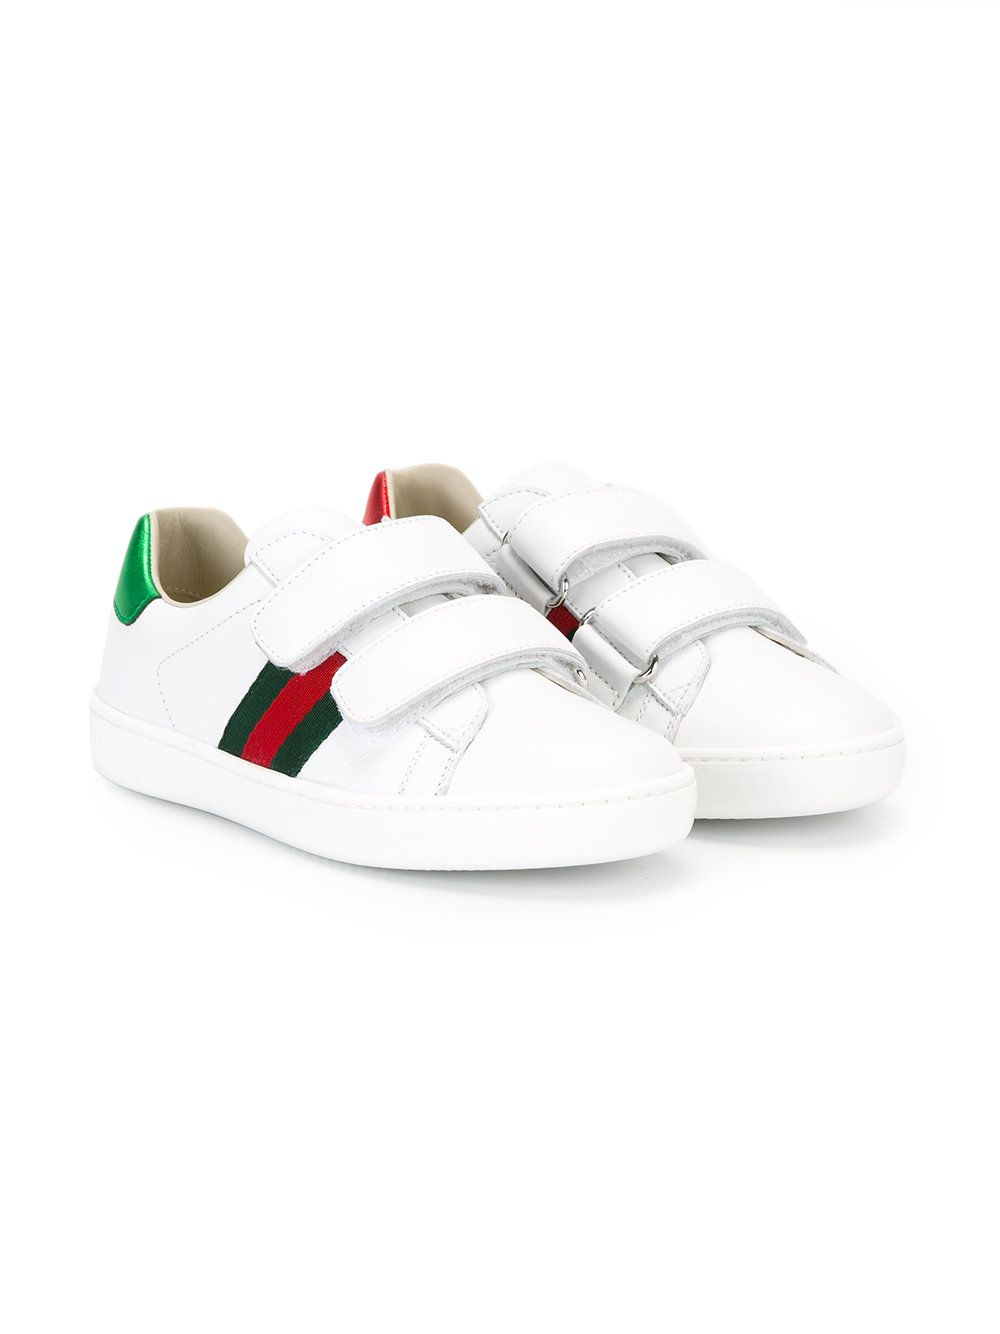 22c3725732cfd  gucci  kids  web  sneakers  shoes  white  sporty  style www.jofre.eu